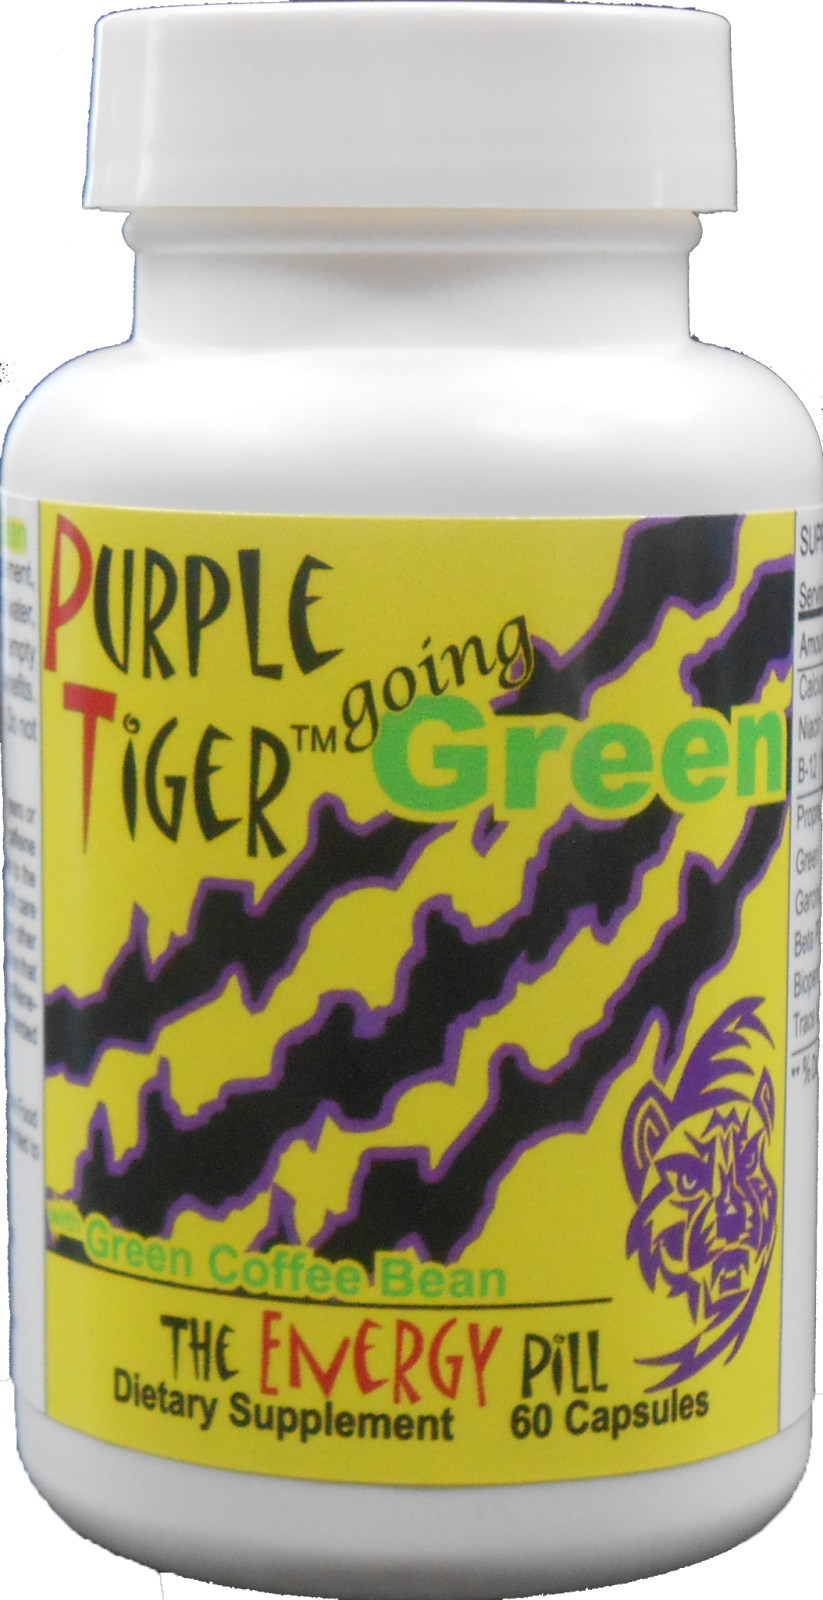 Purple Tiger Going Green Green coffee bean extract